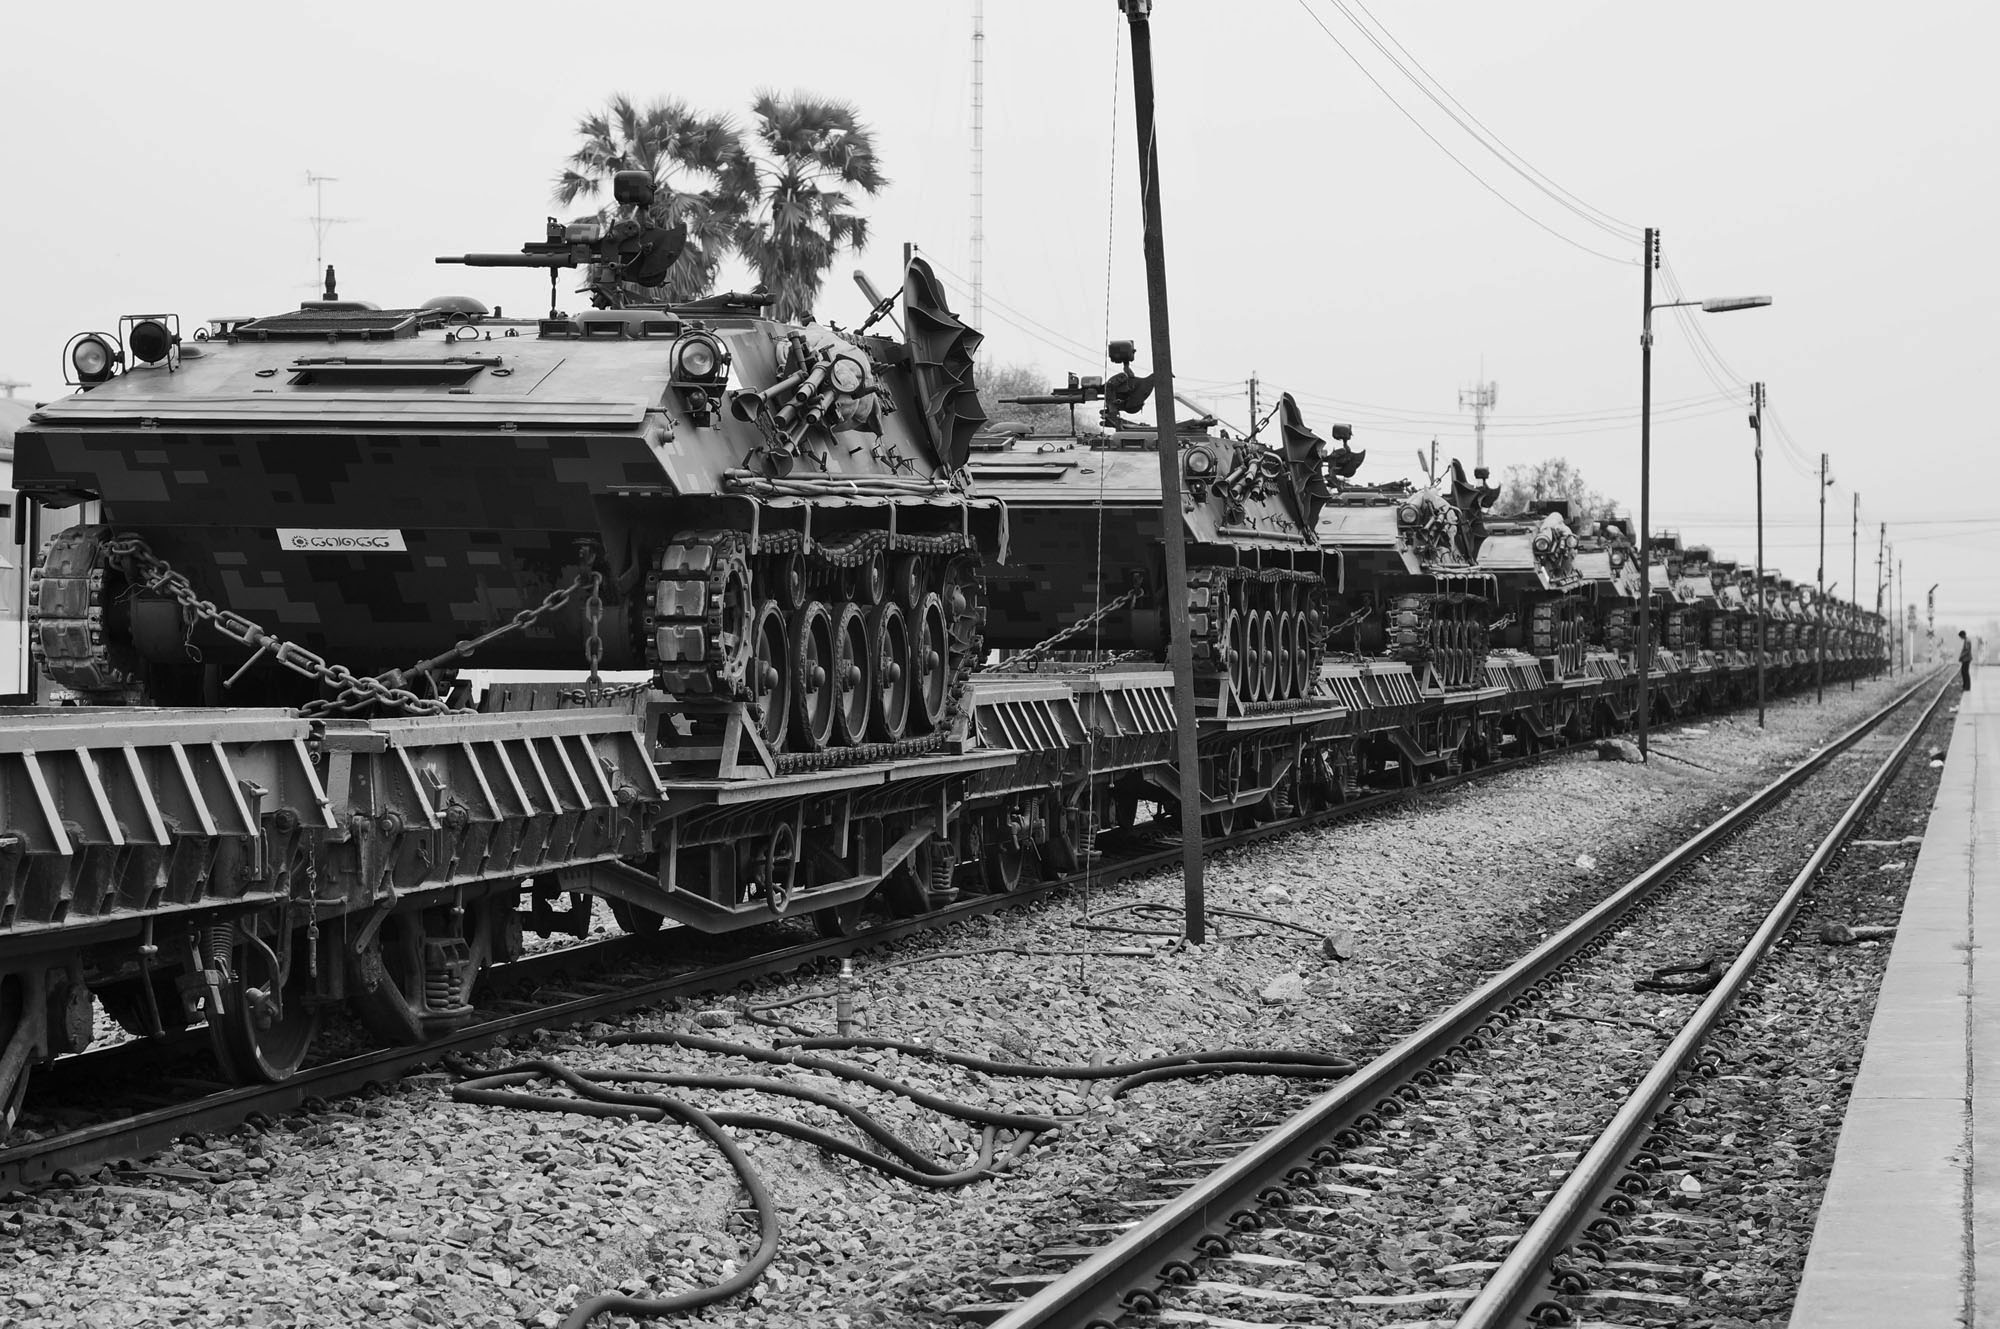 thailand tanks train station